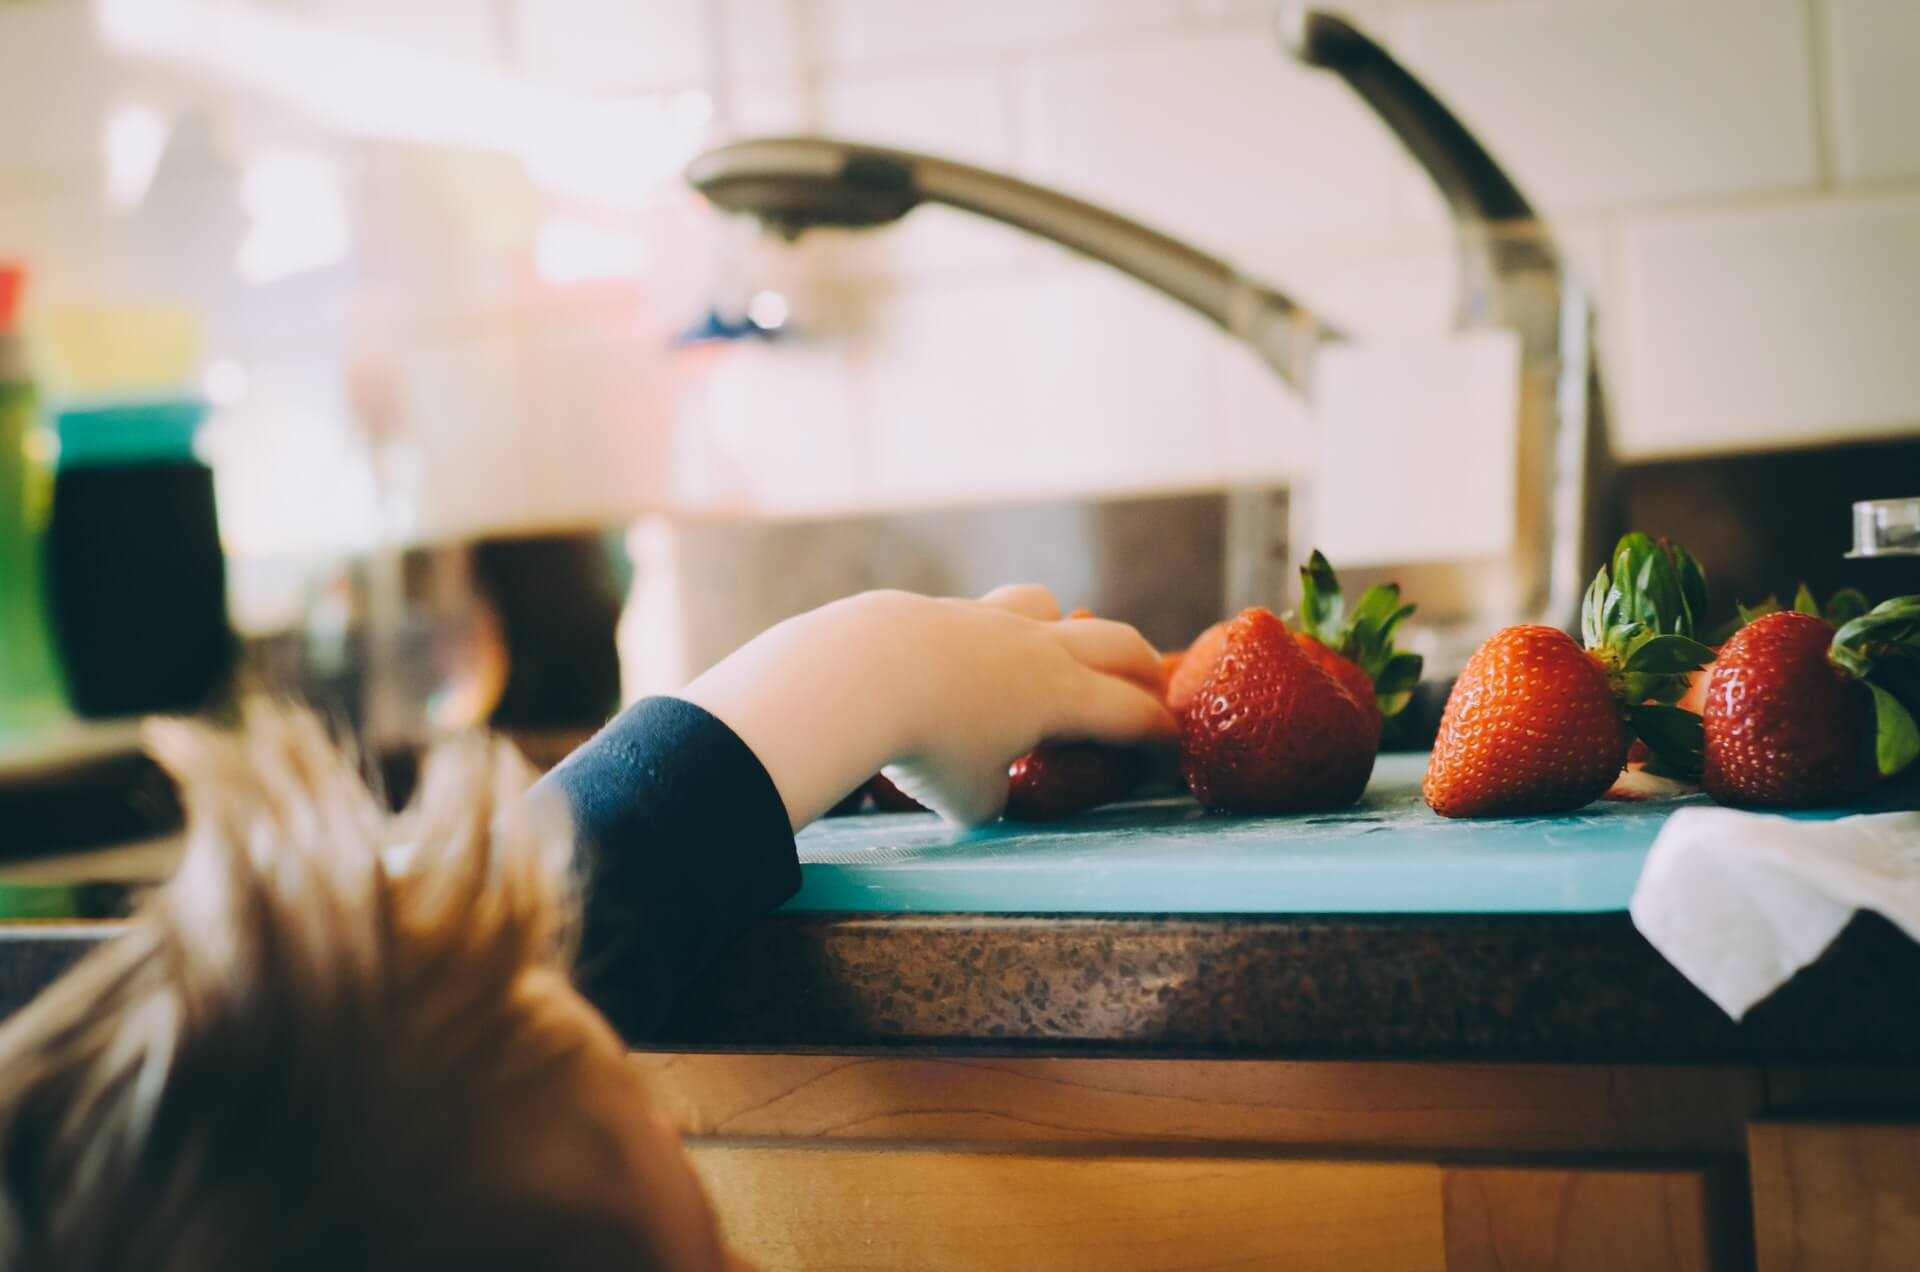 Child reaching for strawberries on kitchen counter